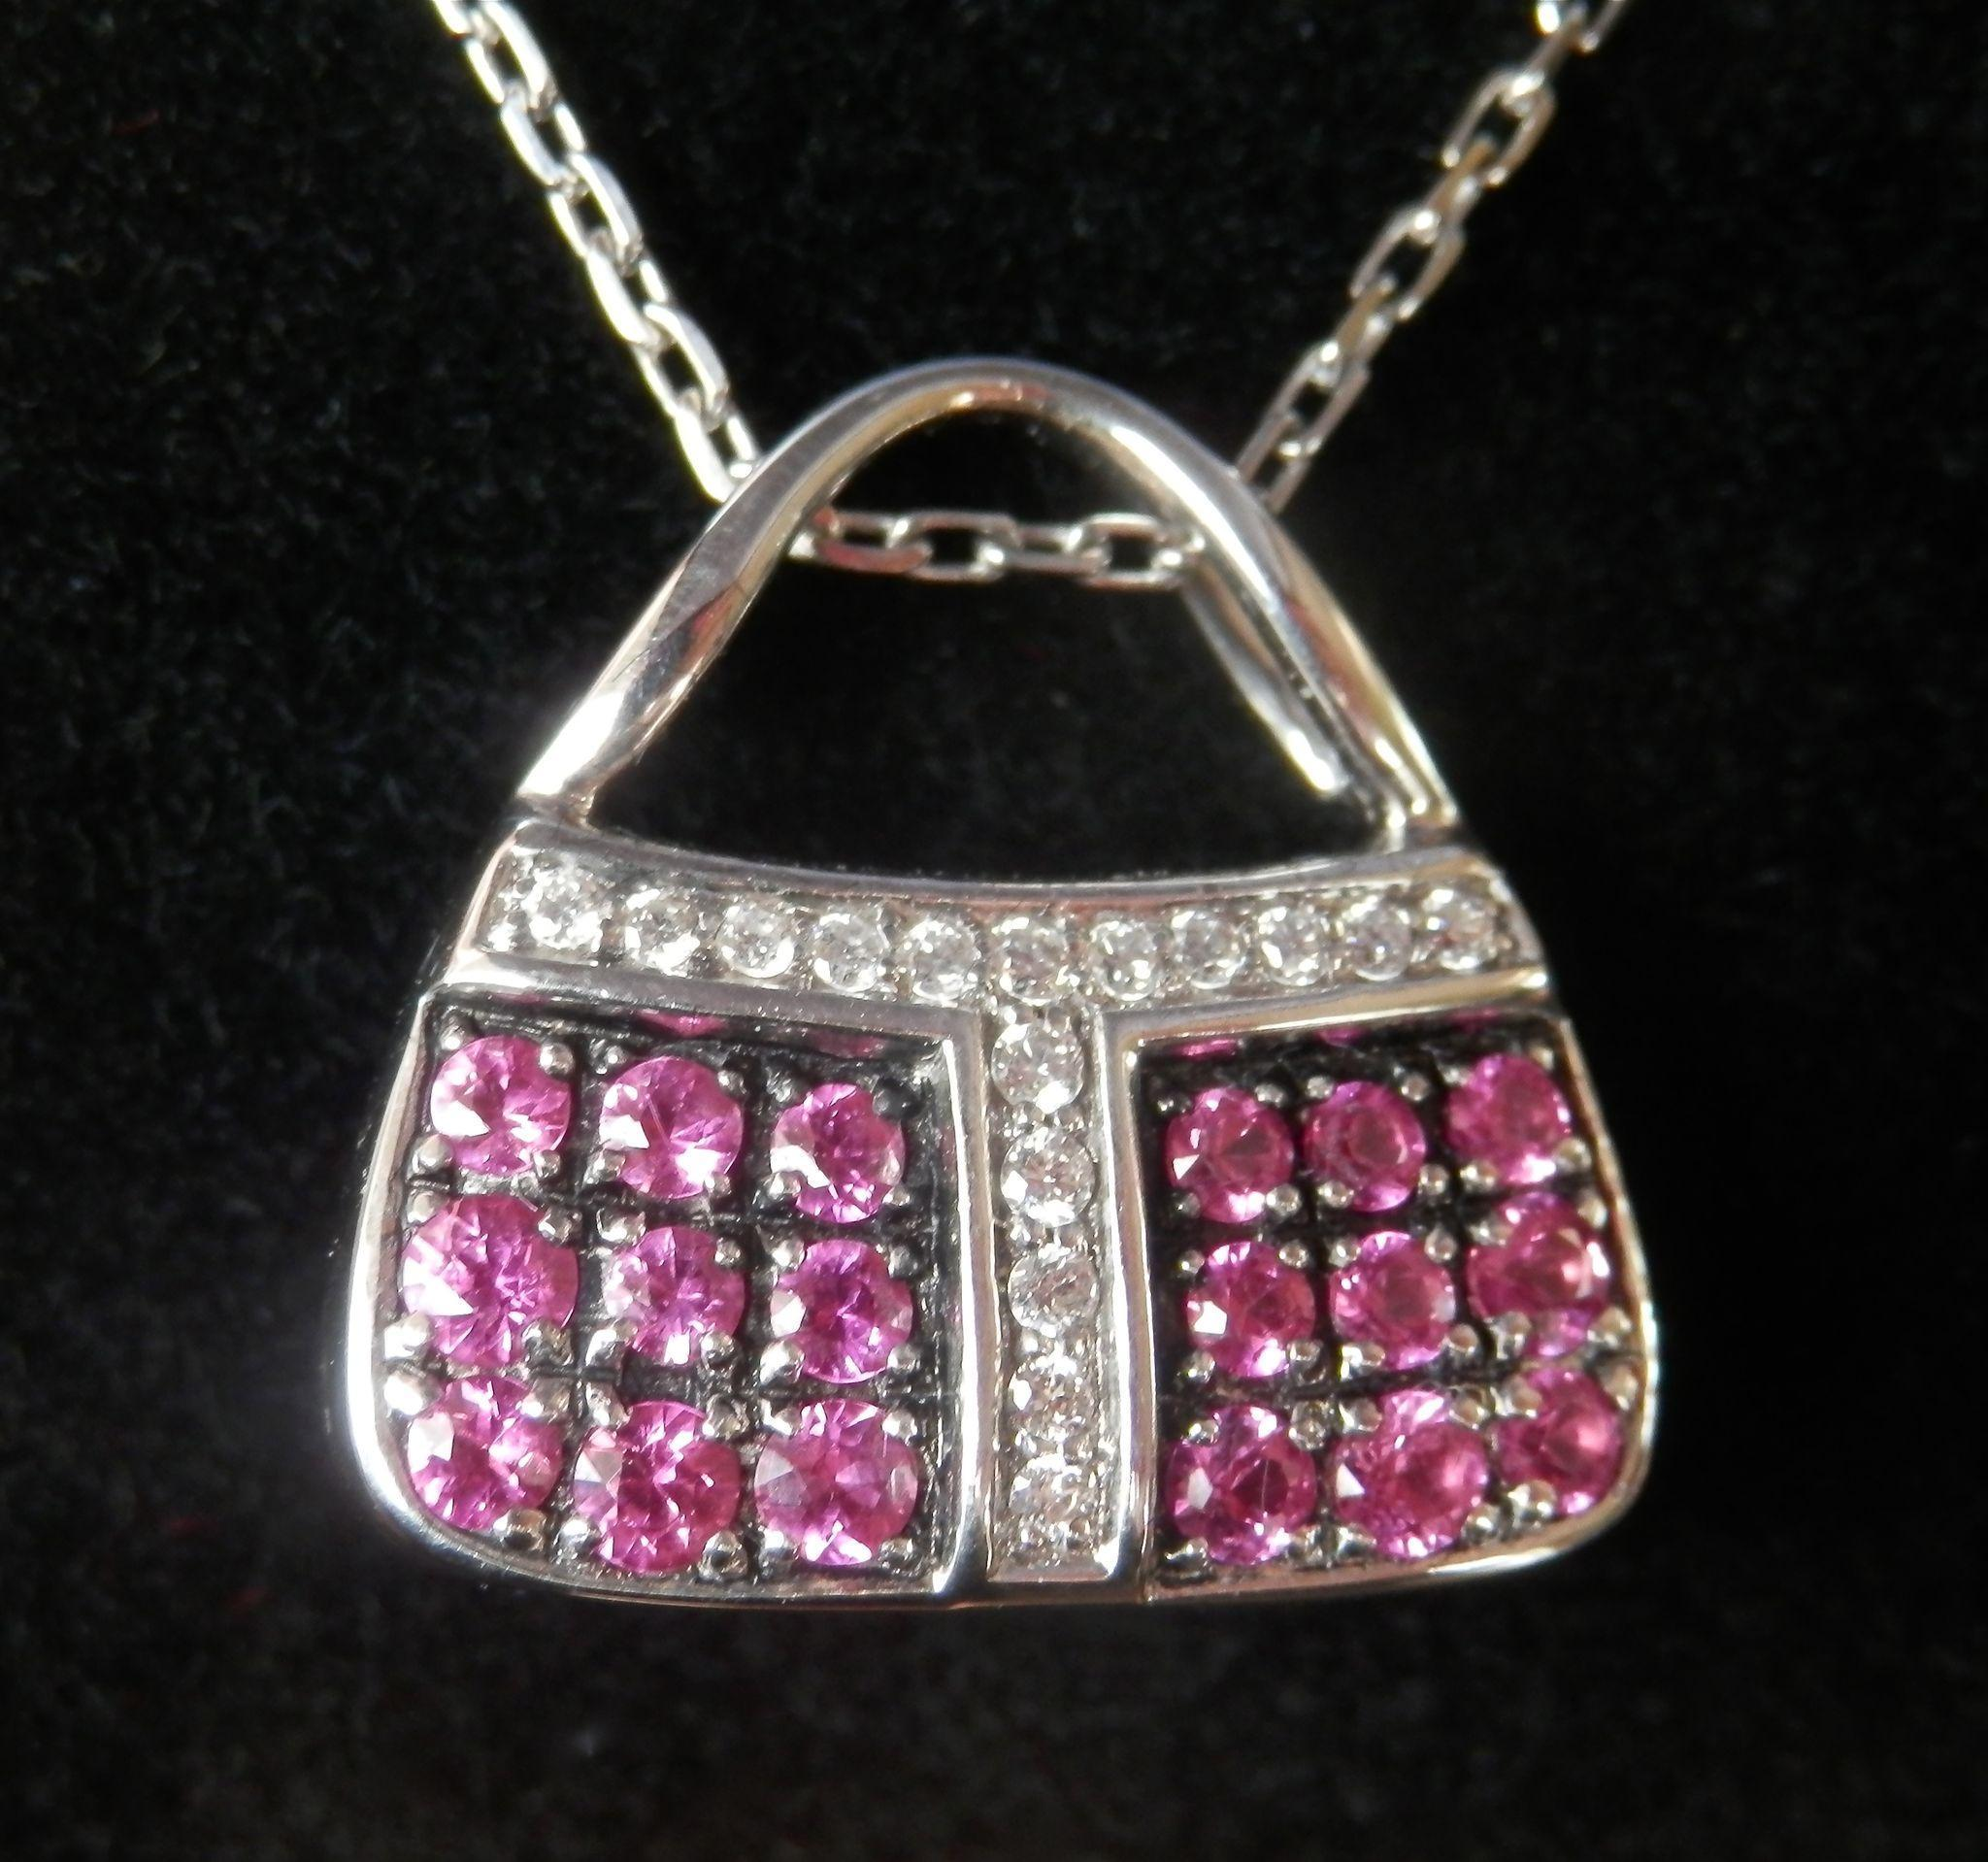 Stunning 18K W/Gold Pink Sapphire MIRABELLE Purse Pendant w/Chain